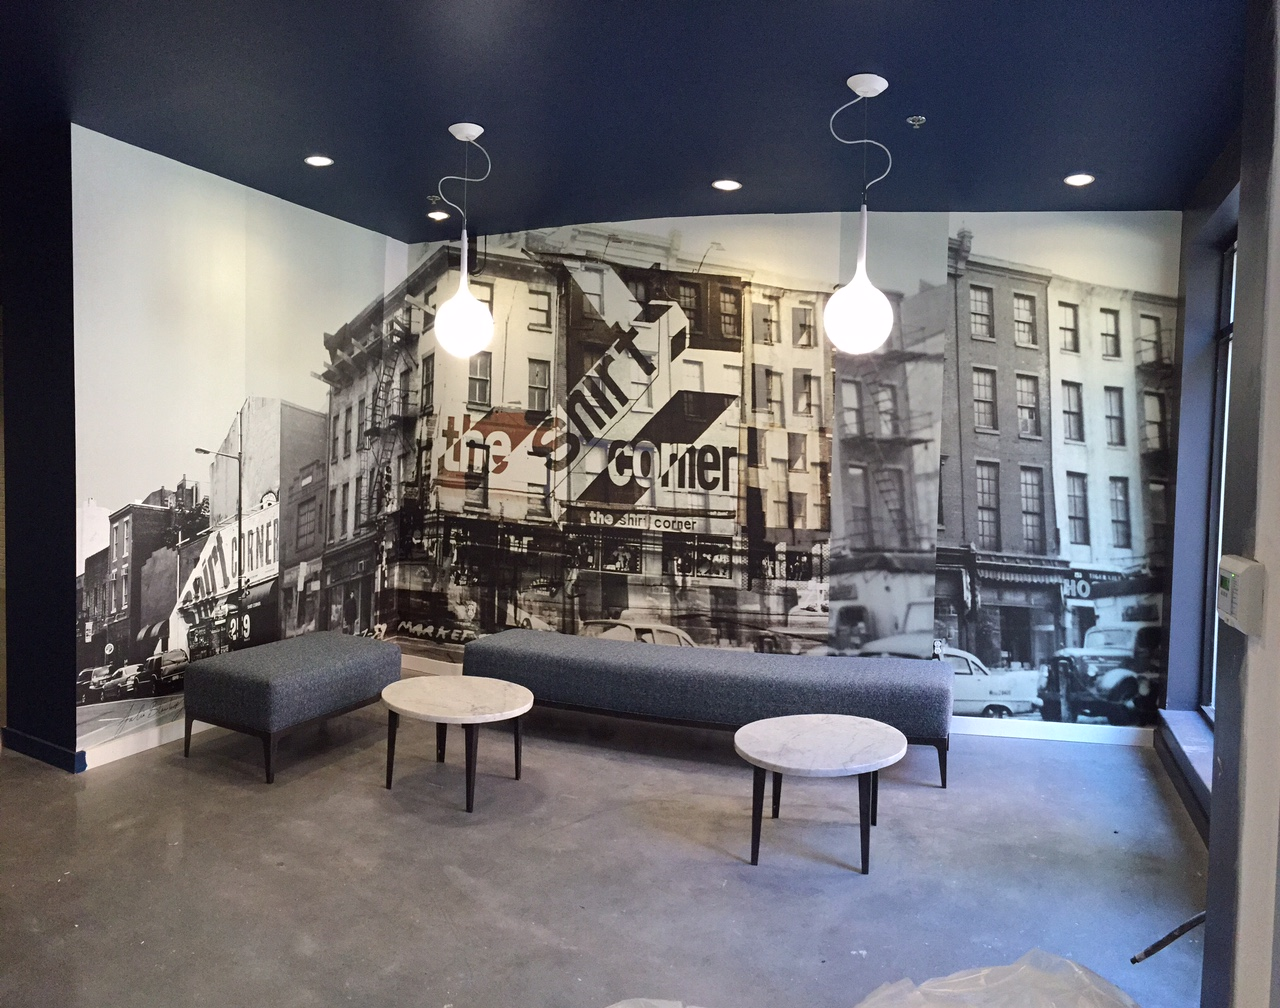 Photographic wall vinyl commissioned by  Alterra Property Group  for the lobby of  The Shirt Corner , an apartment building in Old City, Philadelphia. In collaboration with  Eileen Tognini .